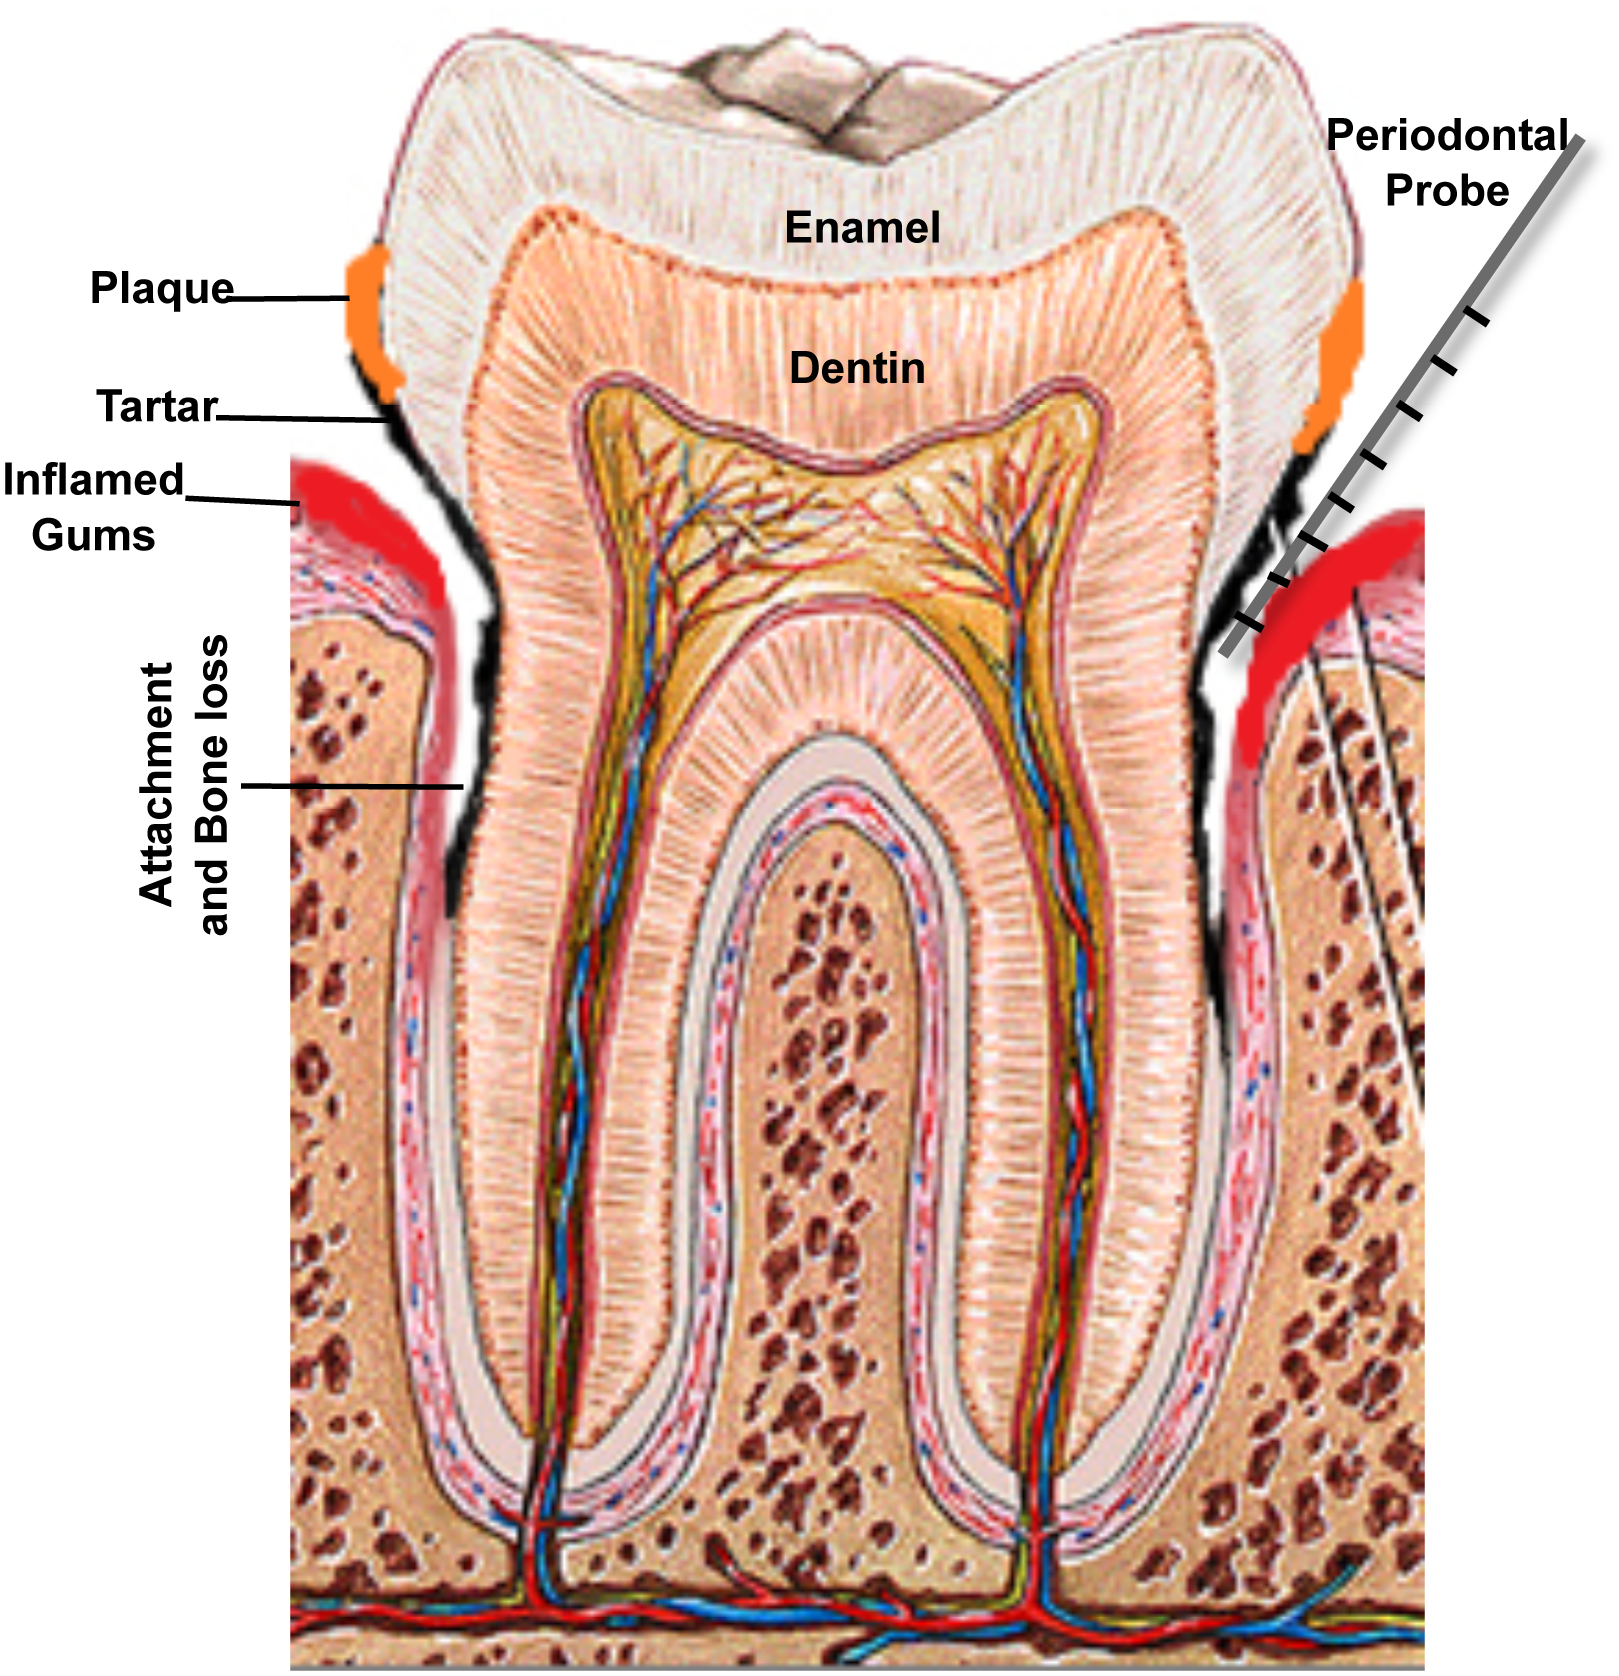 A schematic of the human tooth illustrating the process of periodontal disease development.